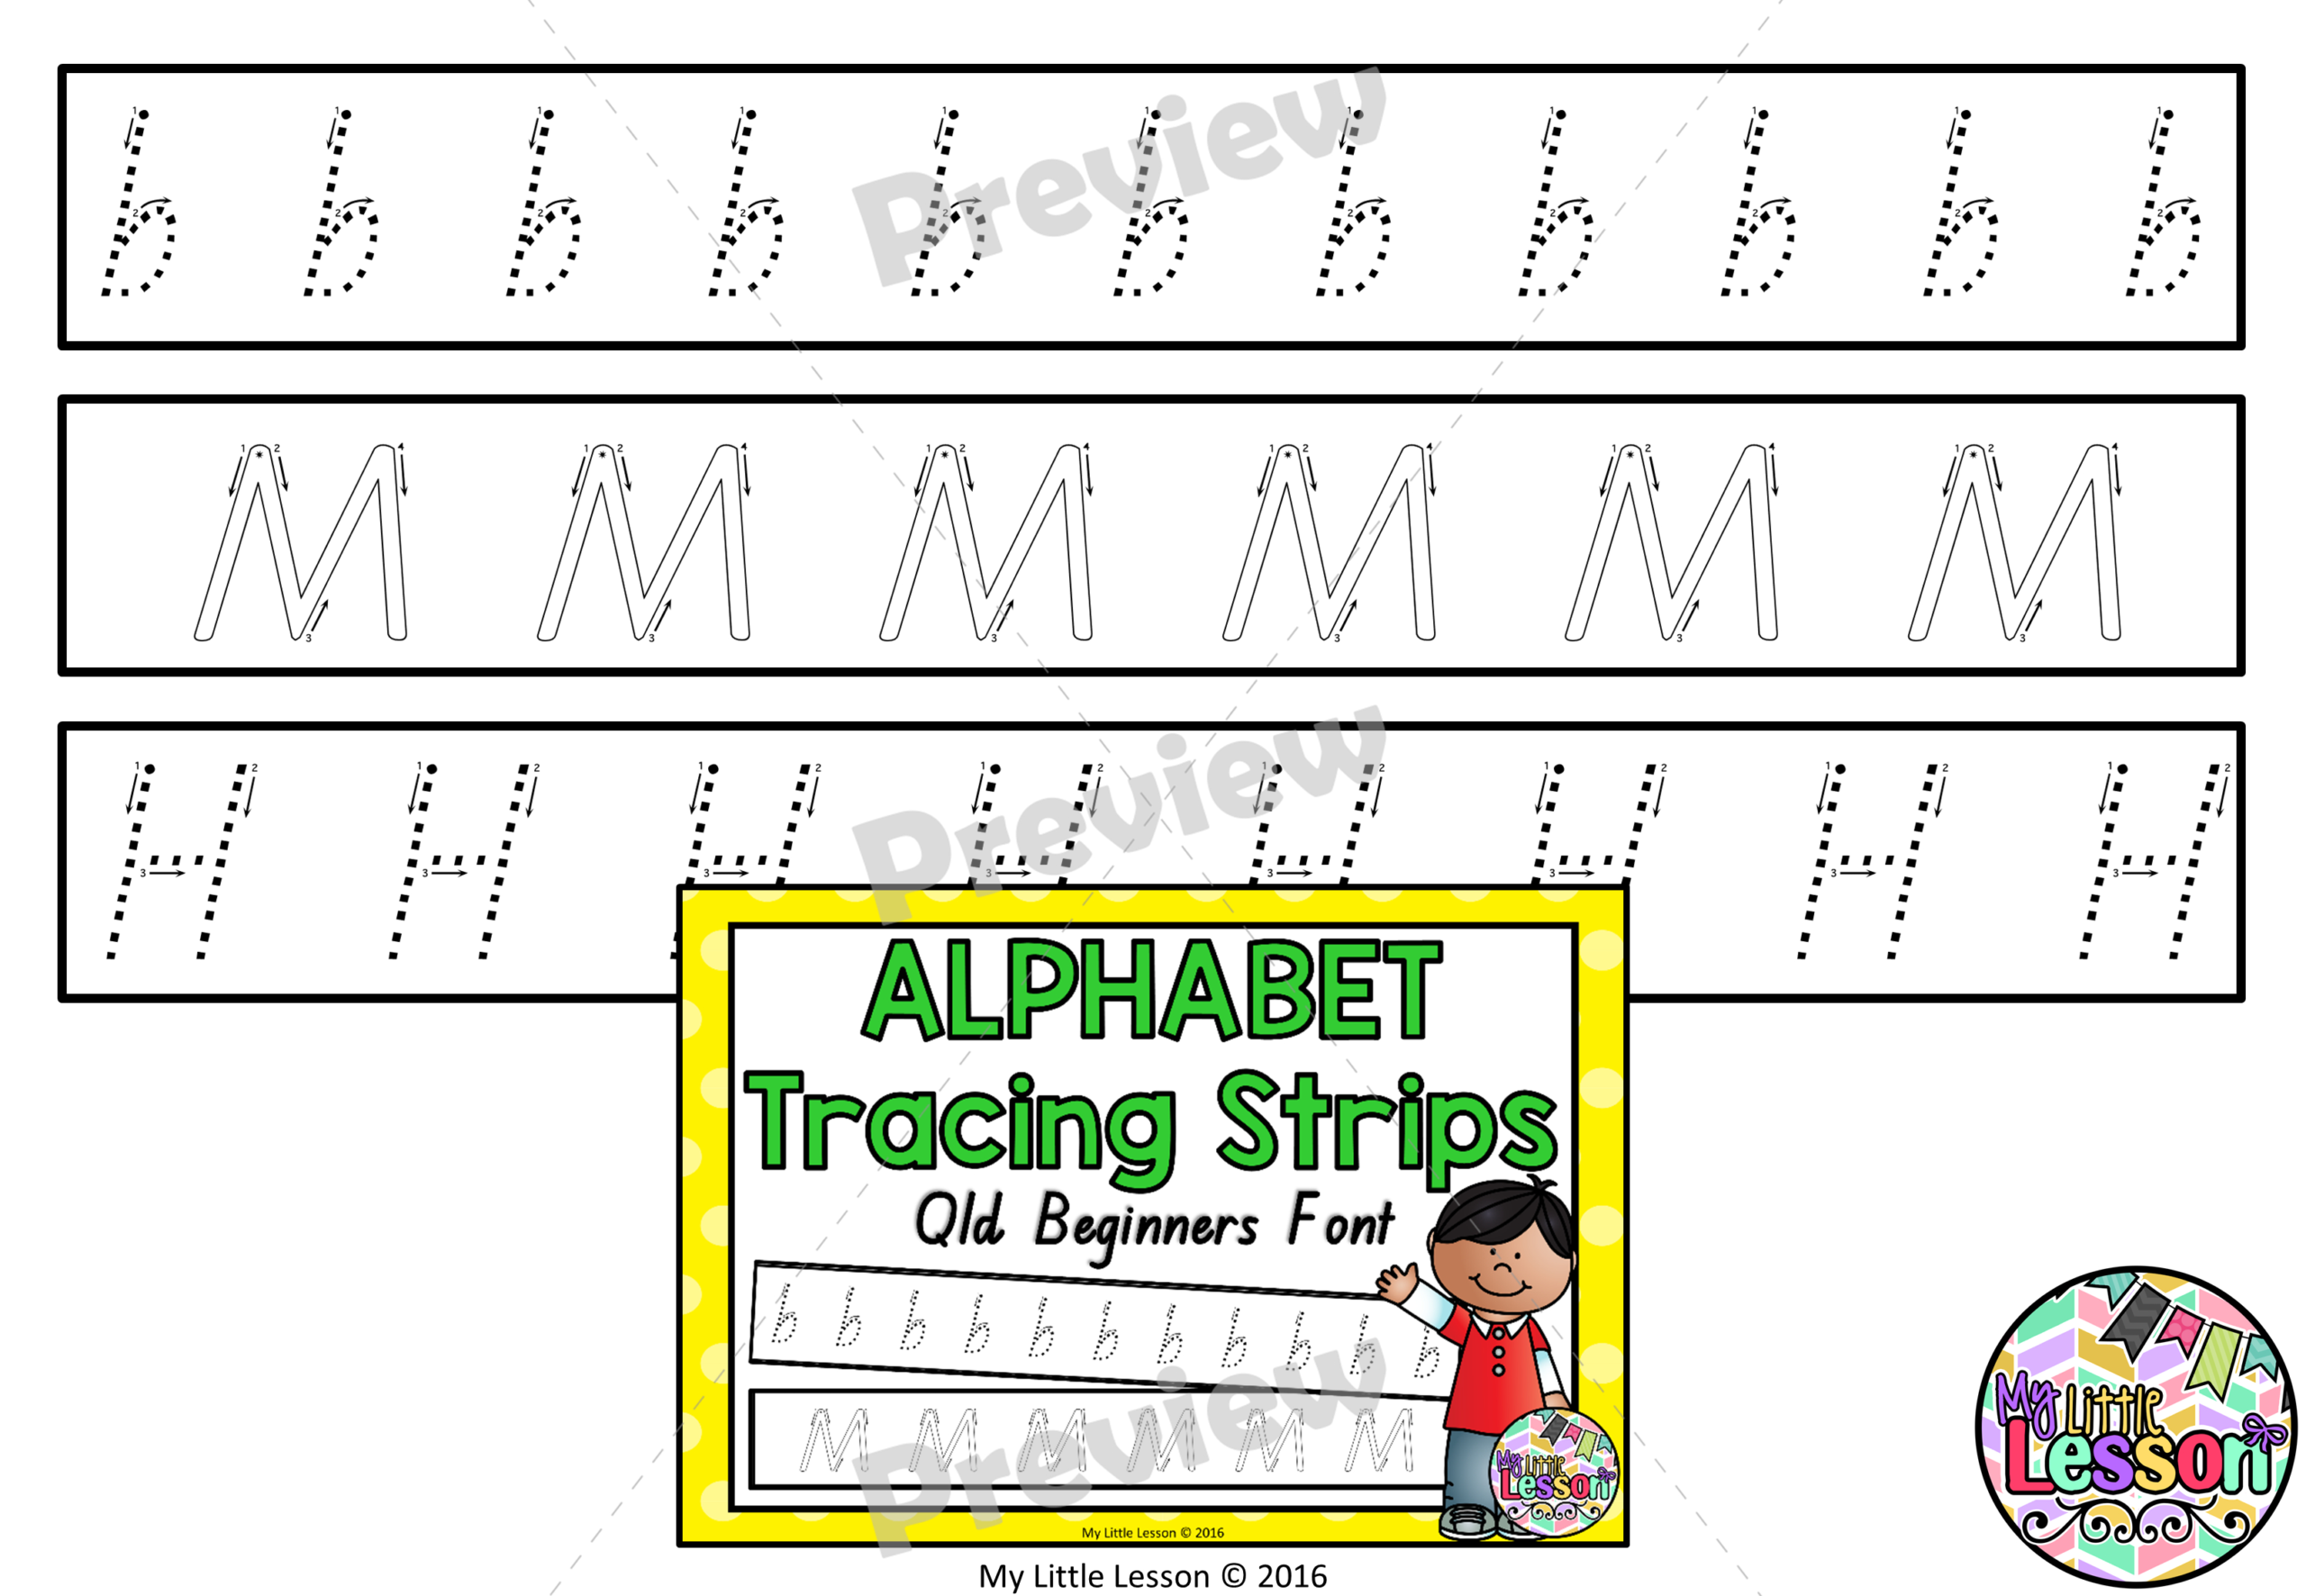 Alphabet Tracing Strips Qld Beginners Font inside Qld Font Tracing Letters